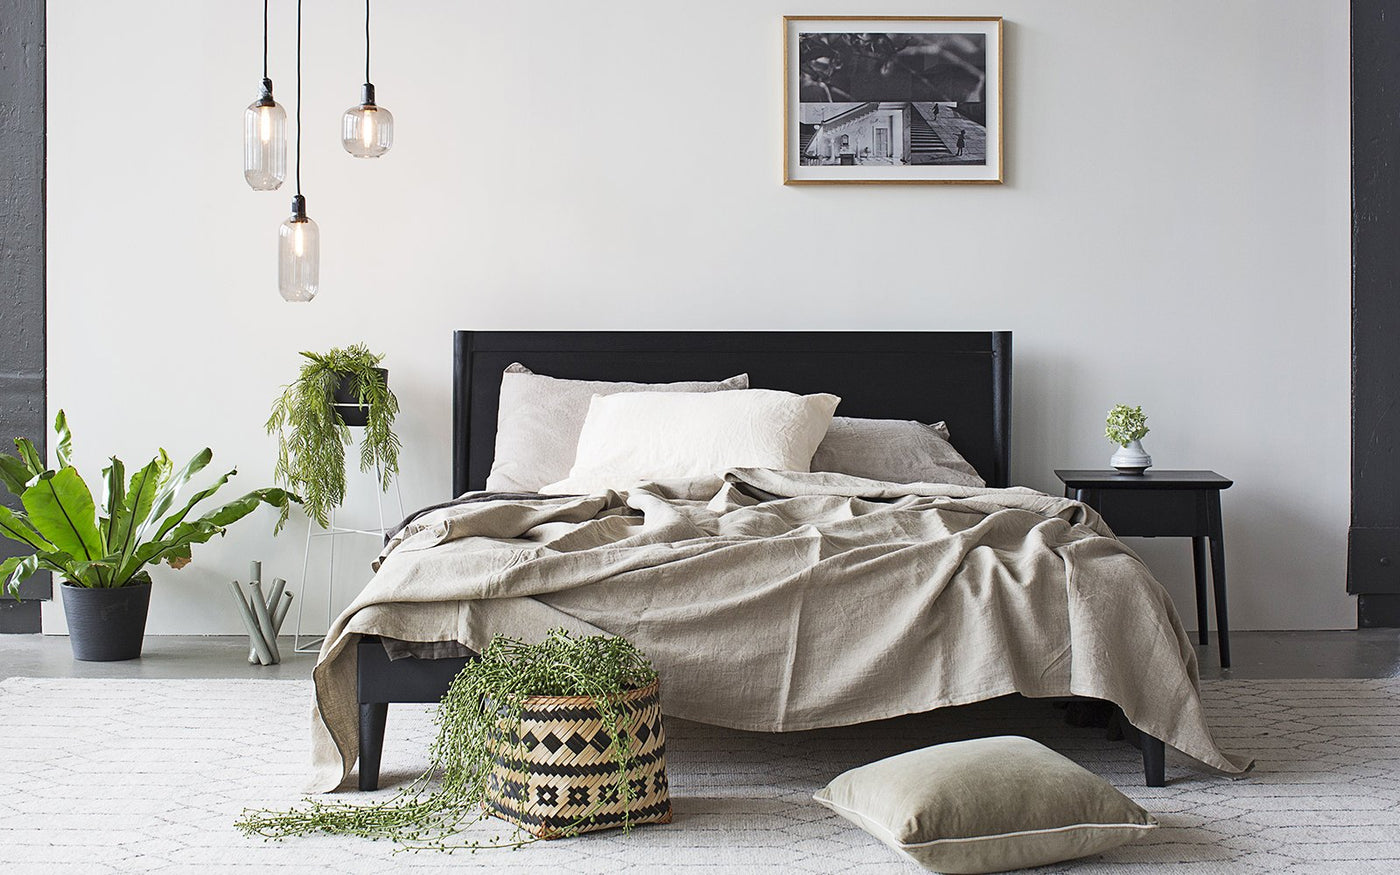 How to choose a bed 20